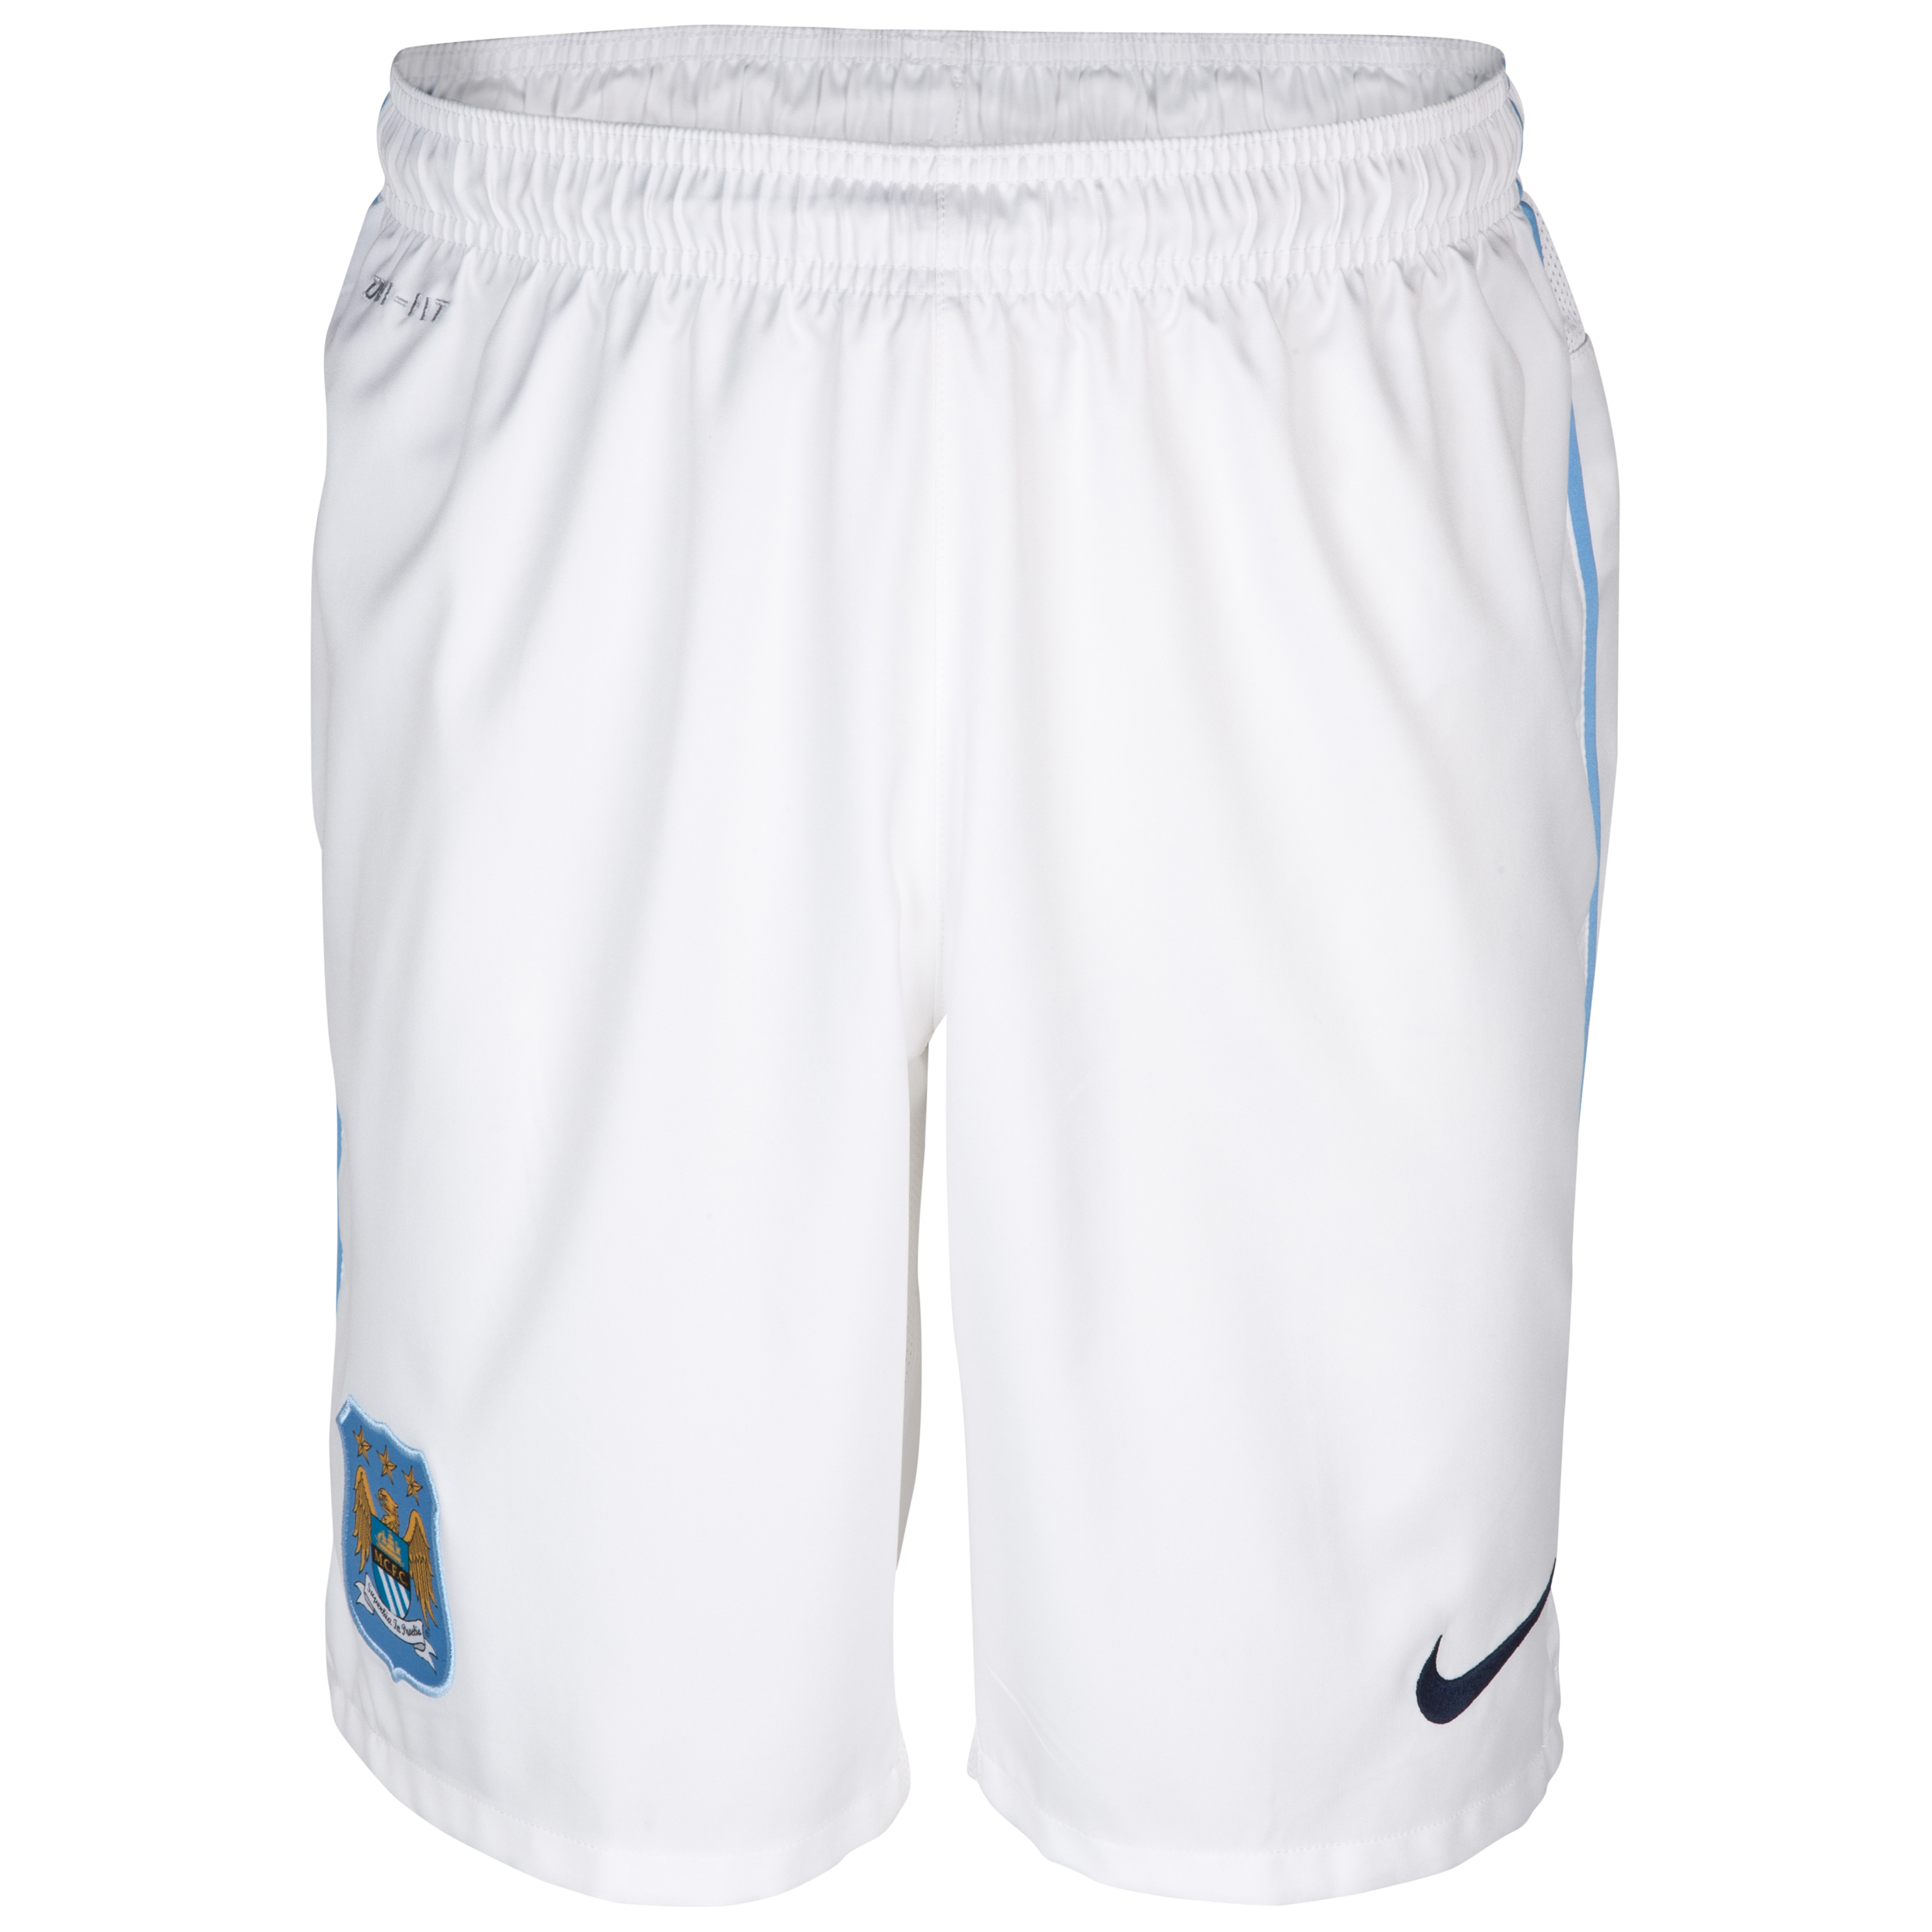 Manchester City Home Shorts 2013/14 - Junior